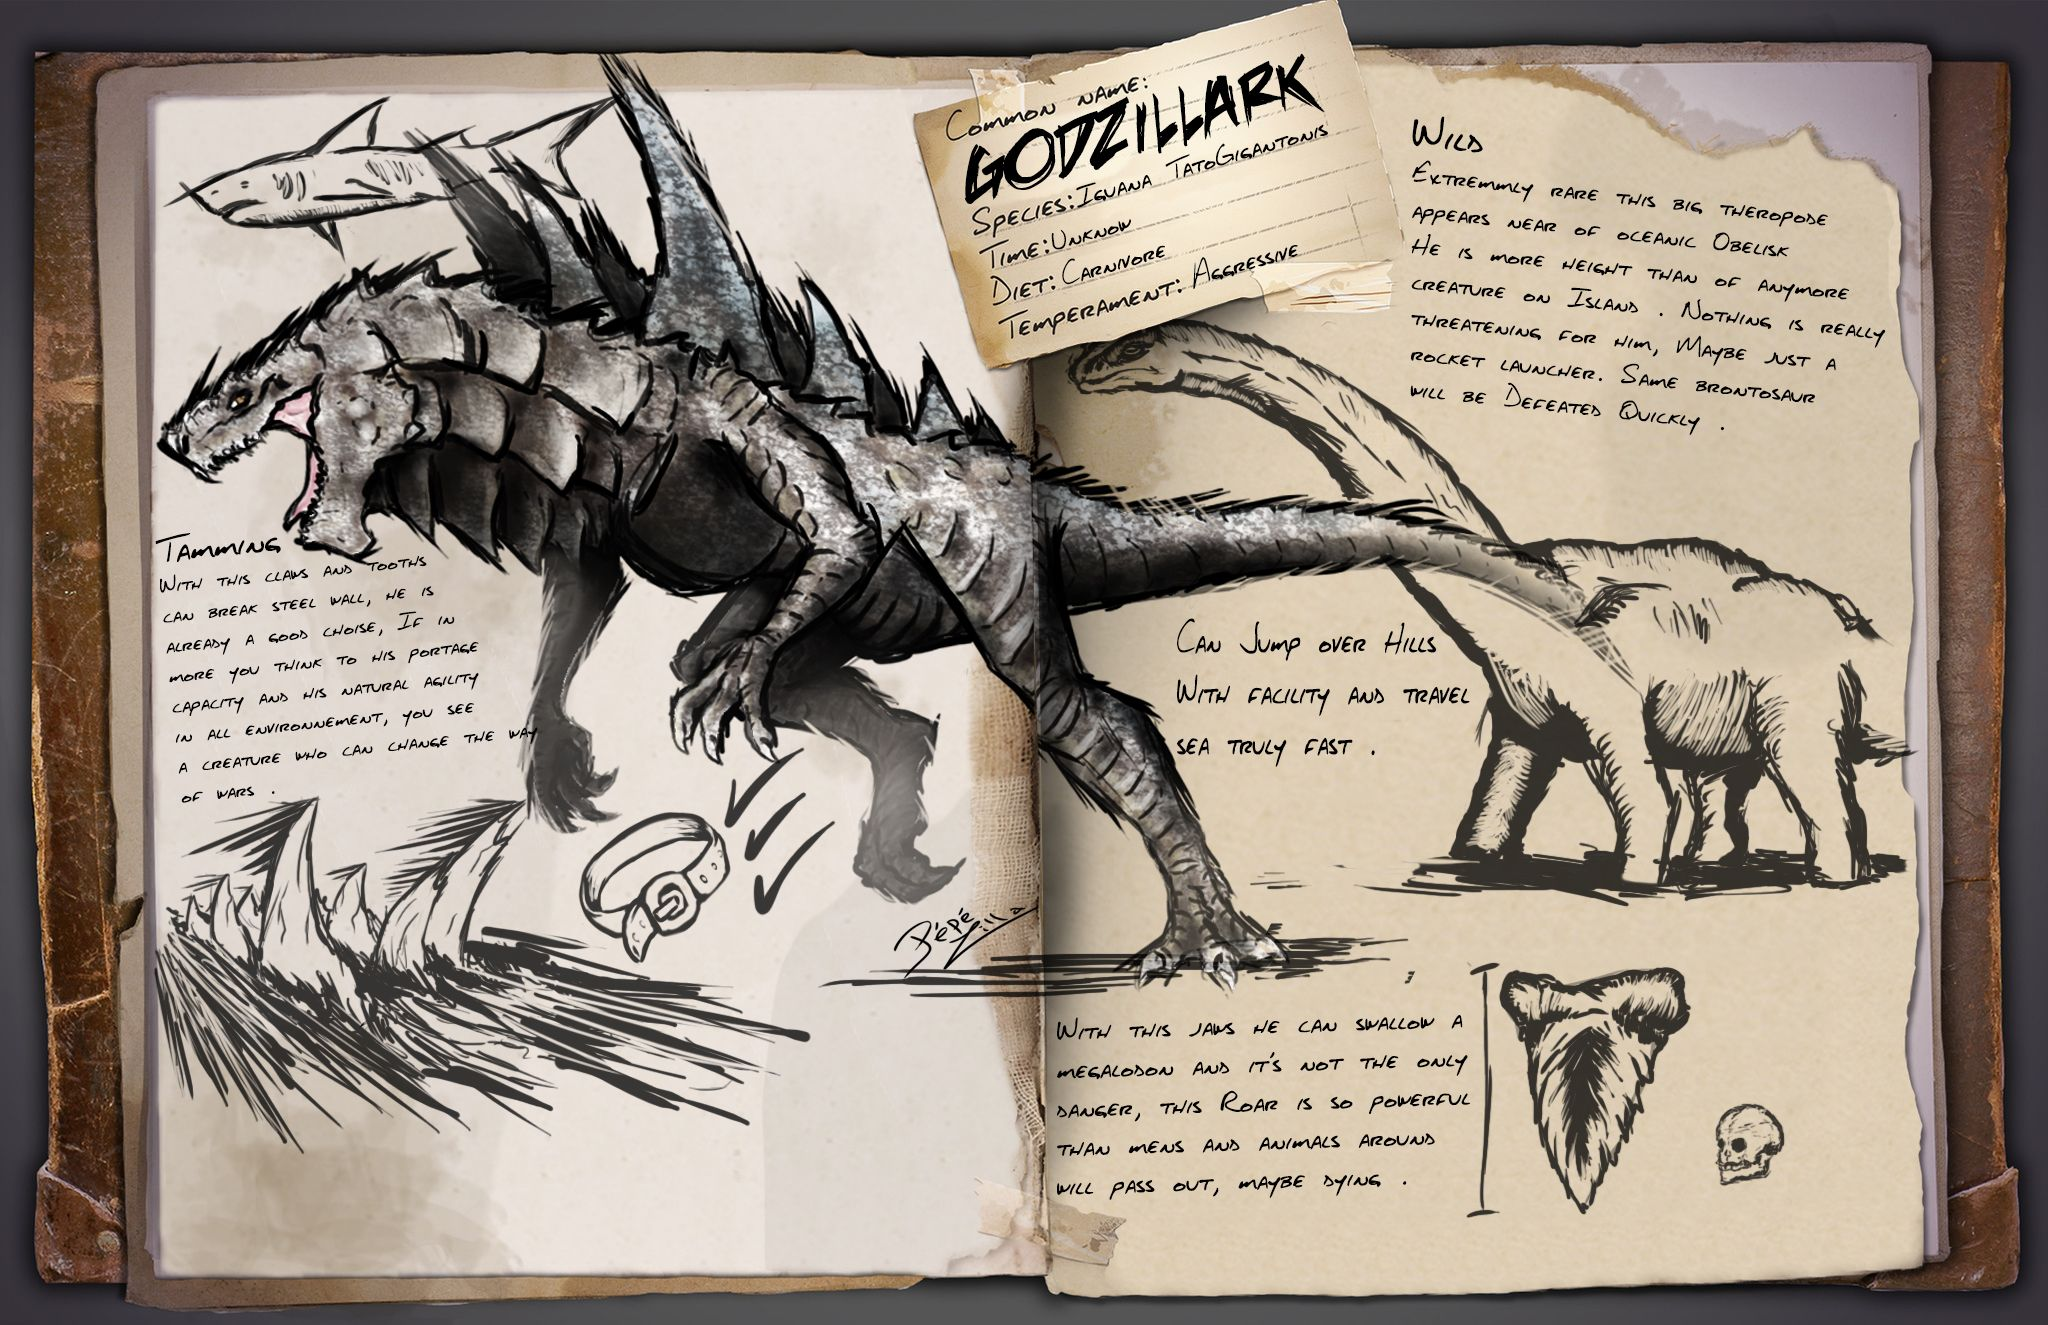 Arksurvivalevolved Pc Playstation4 Xboxone Para Mas Informacion Sobre Videojuegos Suscrib Bosquejos De Animales Dinosaurios Imagenes Animales Para Pintar Daeodon comedentis is the even though daeodon has as many. pinterest